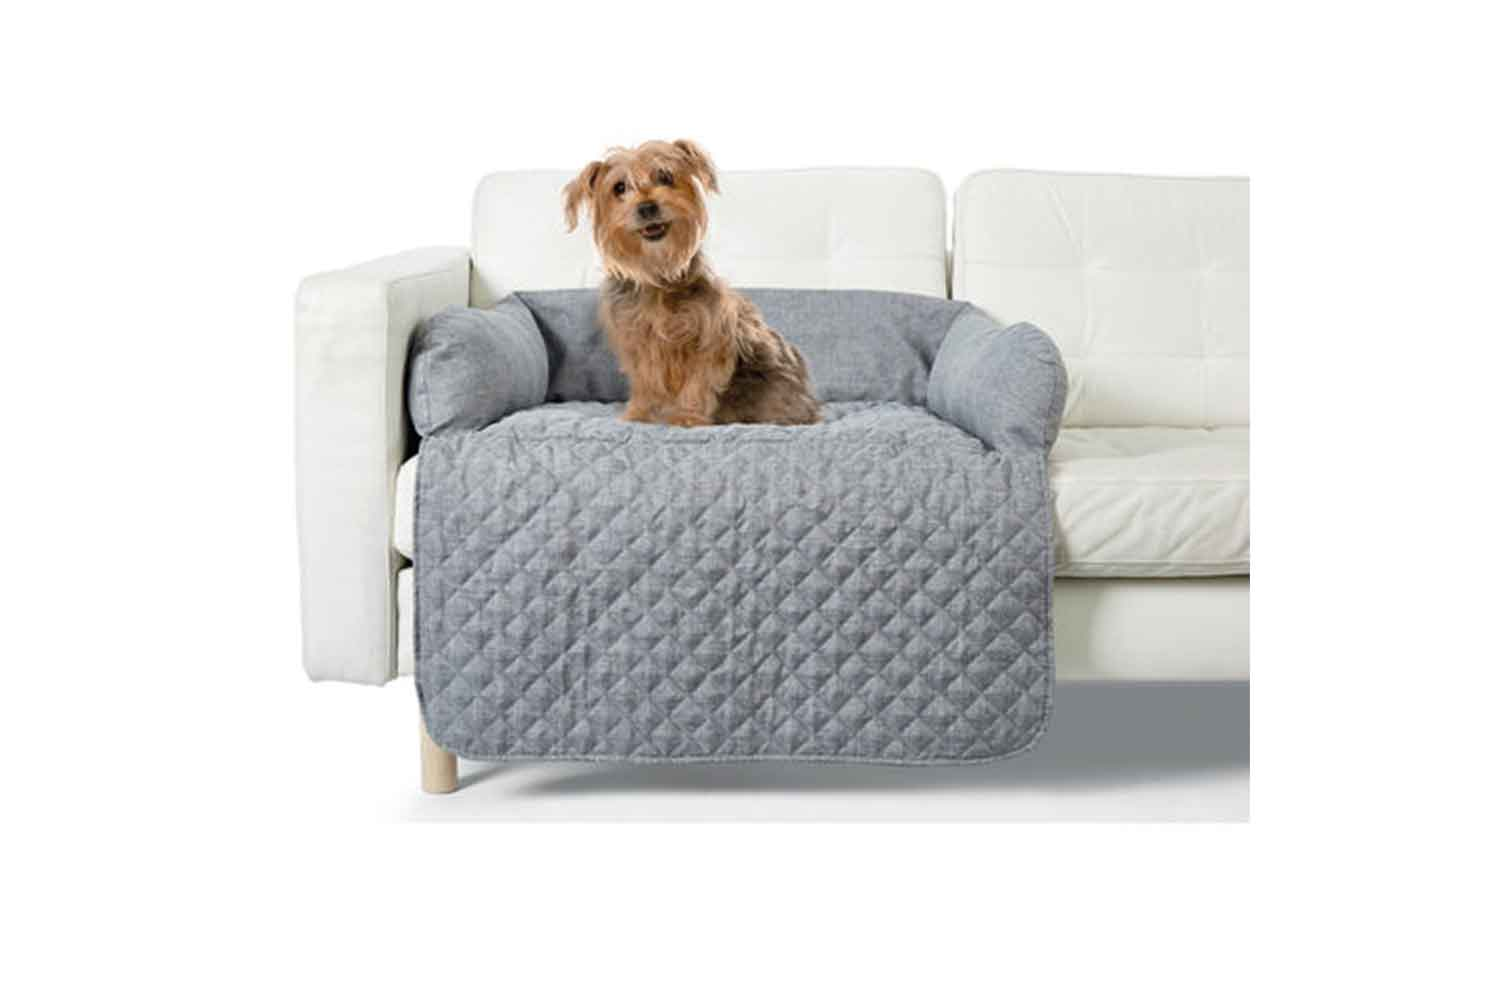 This Kmart Couch Topper For Your Pet Is Breaking The